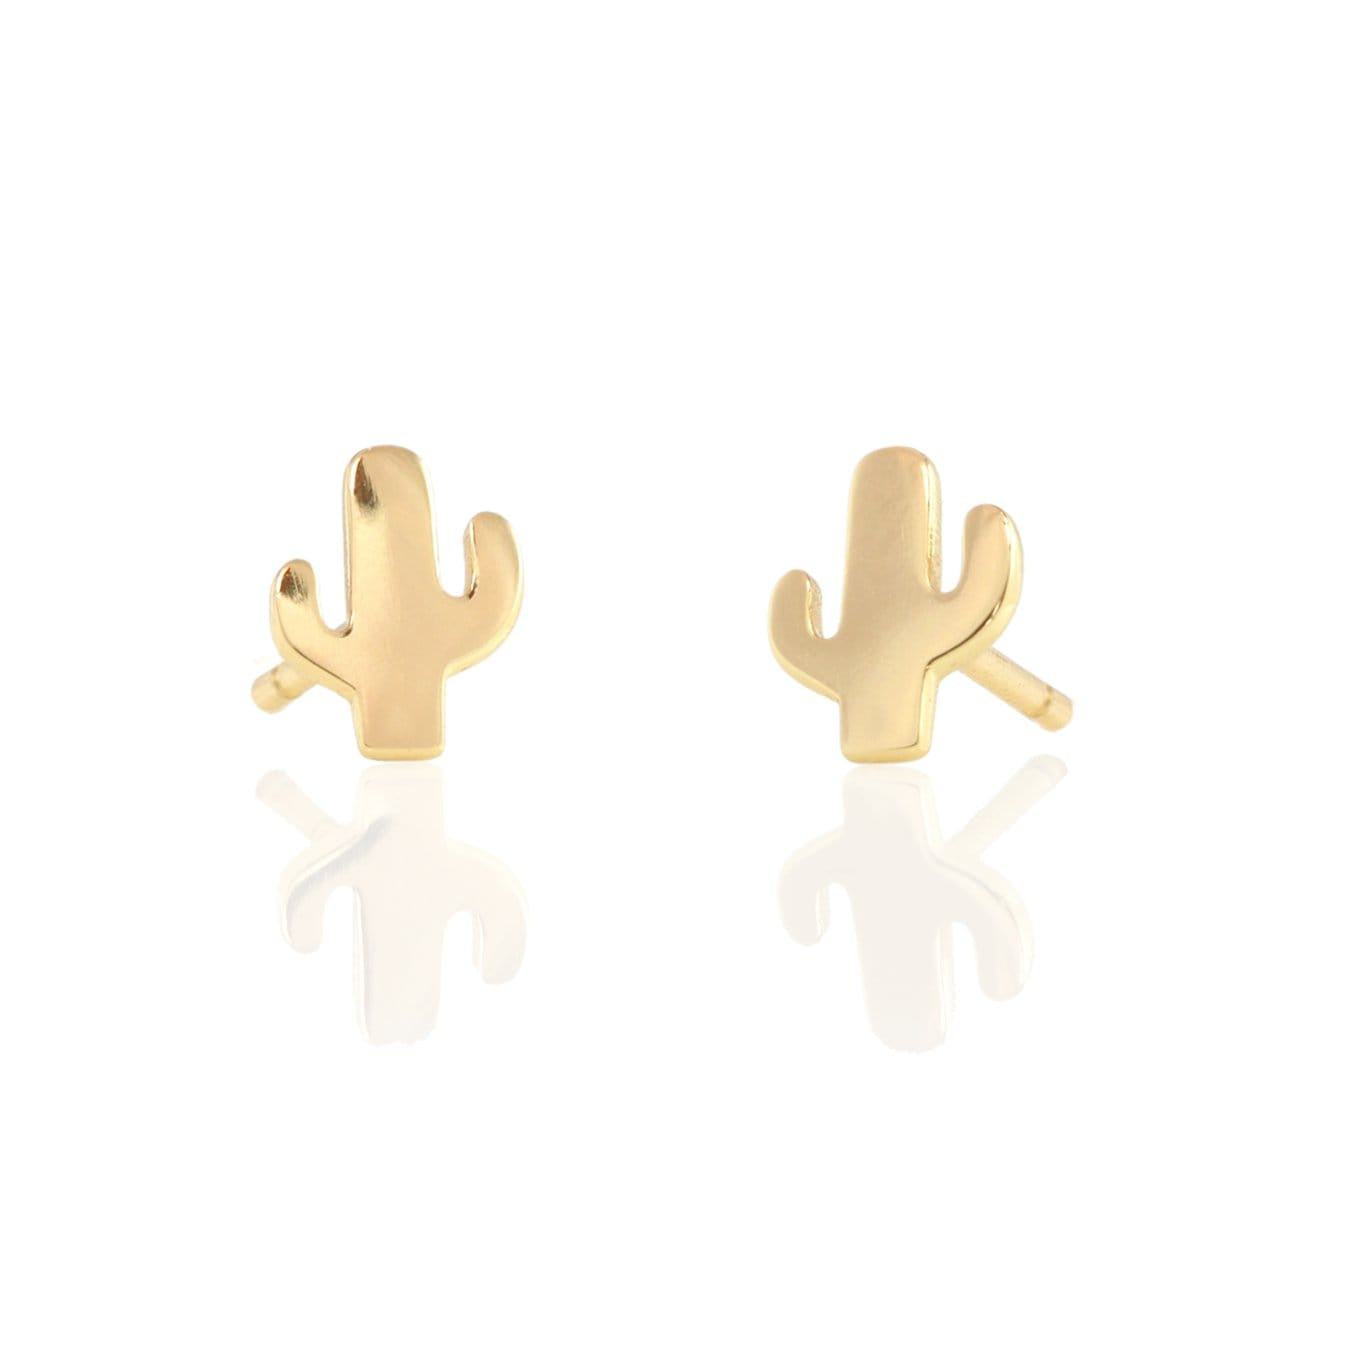 KRIS NATIONS - CACTUS STUD EARRINGS IN GOLD